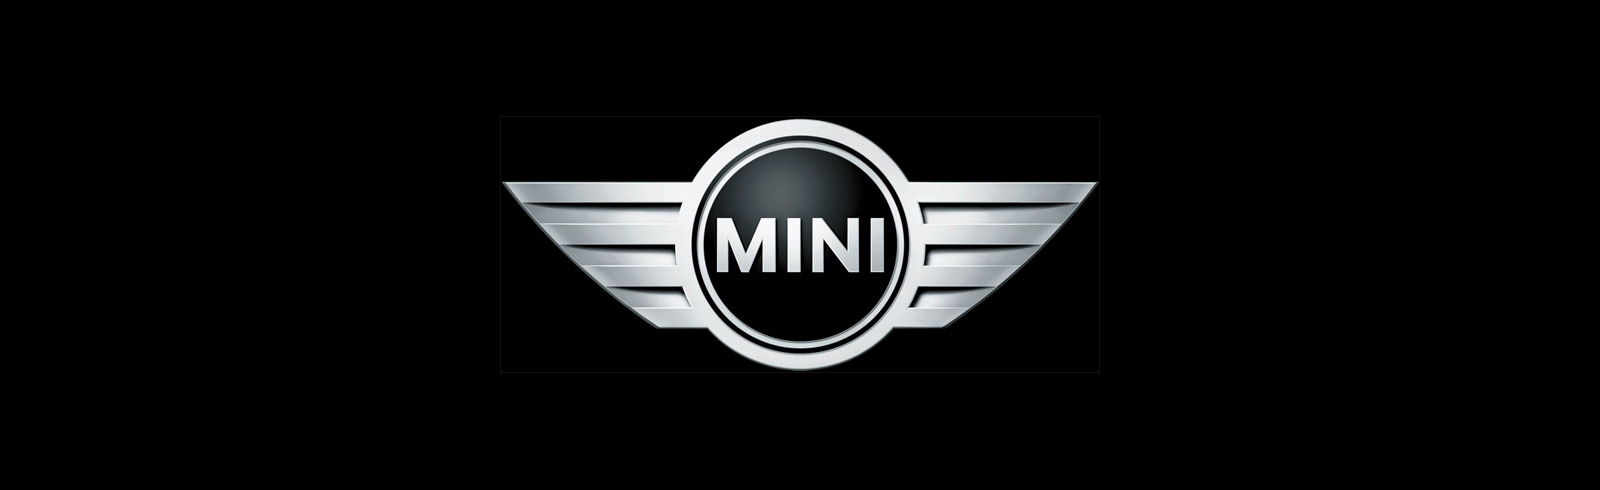 Mini will unveil the all-electric Mini Cooper SE on July 9, reservations are open in 5 EU countries